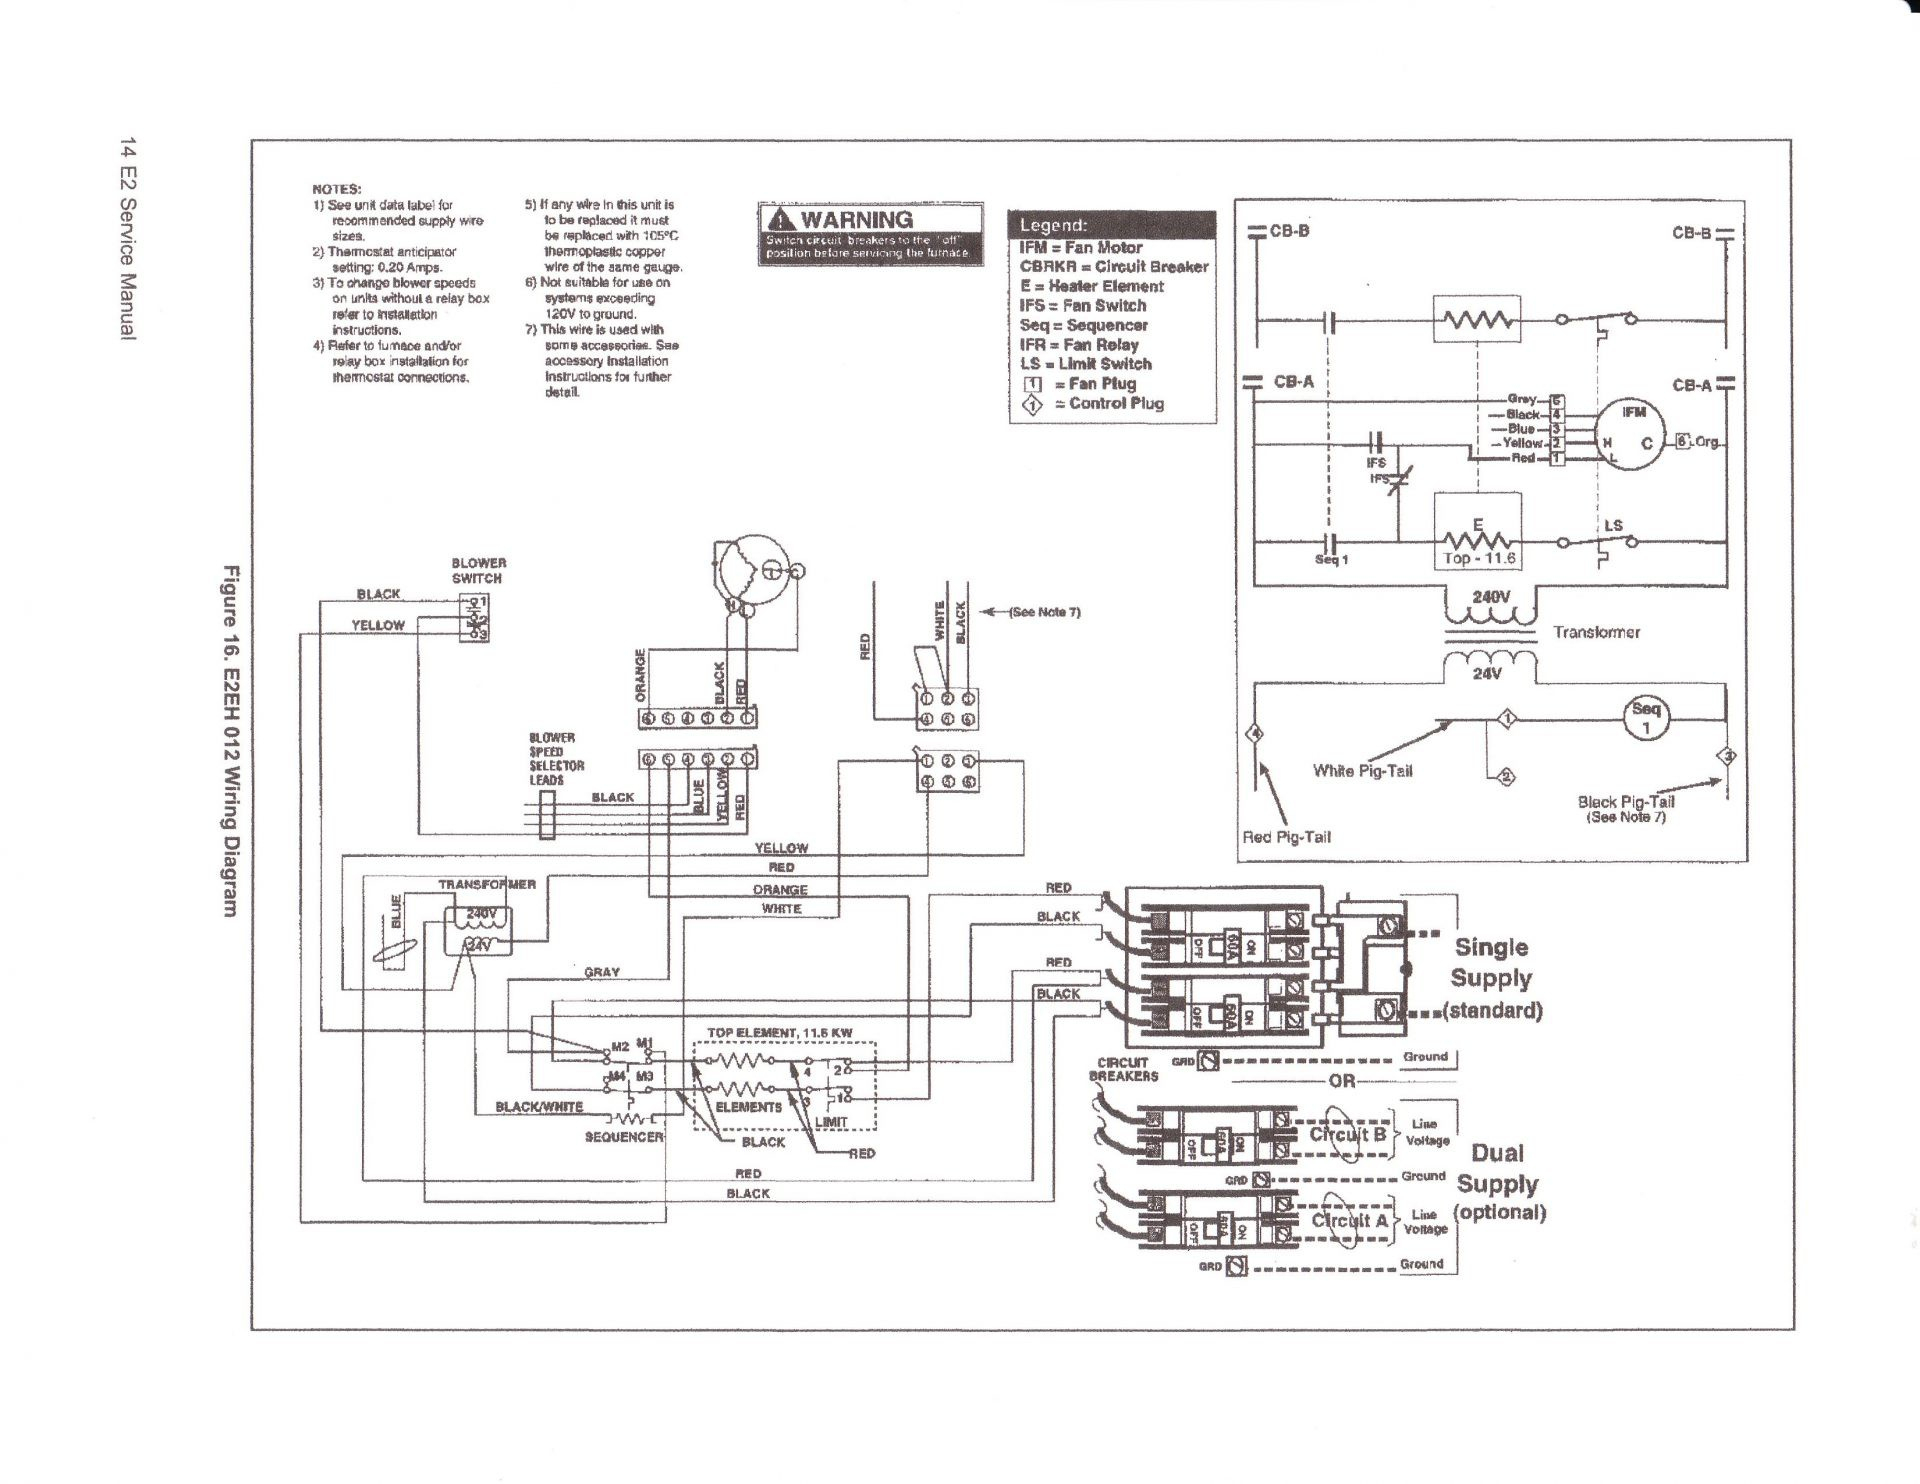 Beckett Oil Burner Wiring Schematic | Manual E-Books - Beckett Oil Burner Wiring Diagram